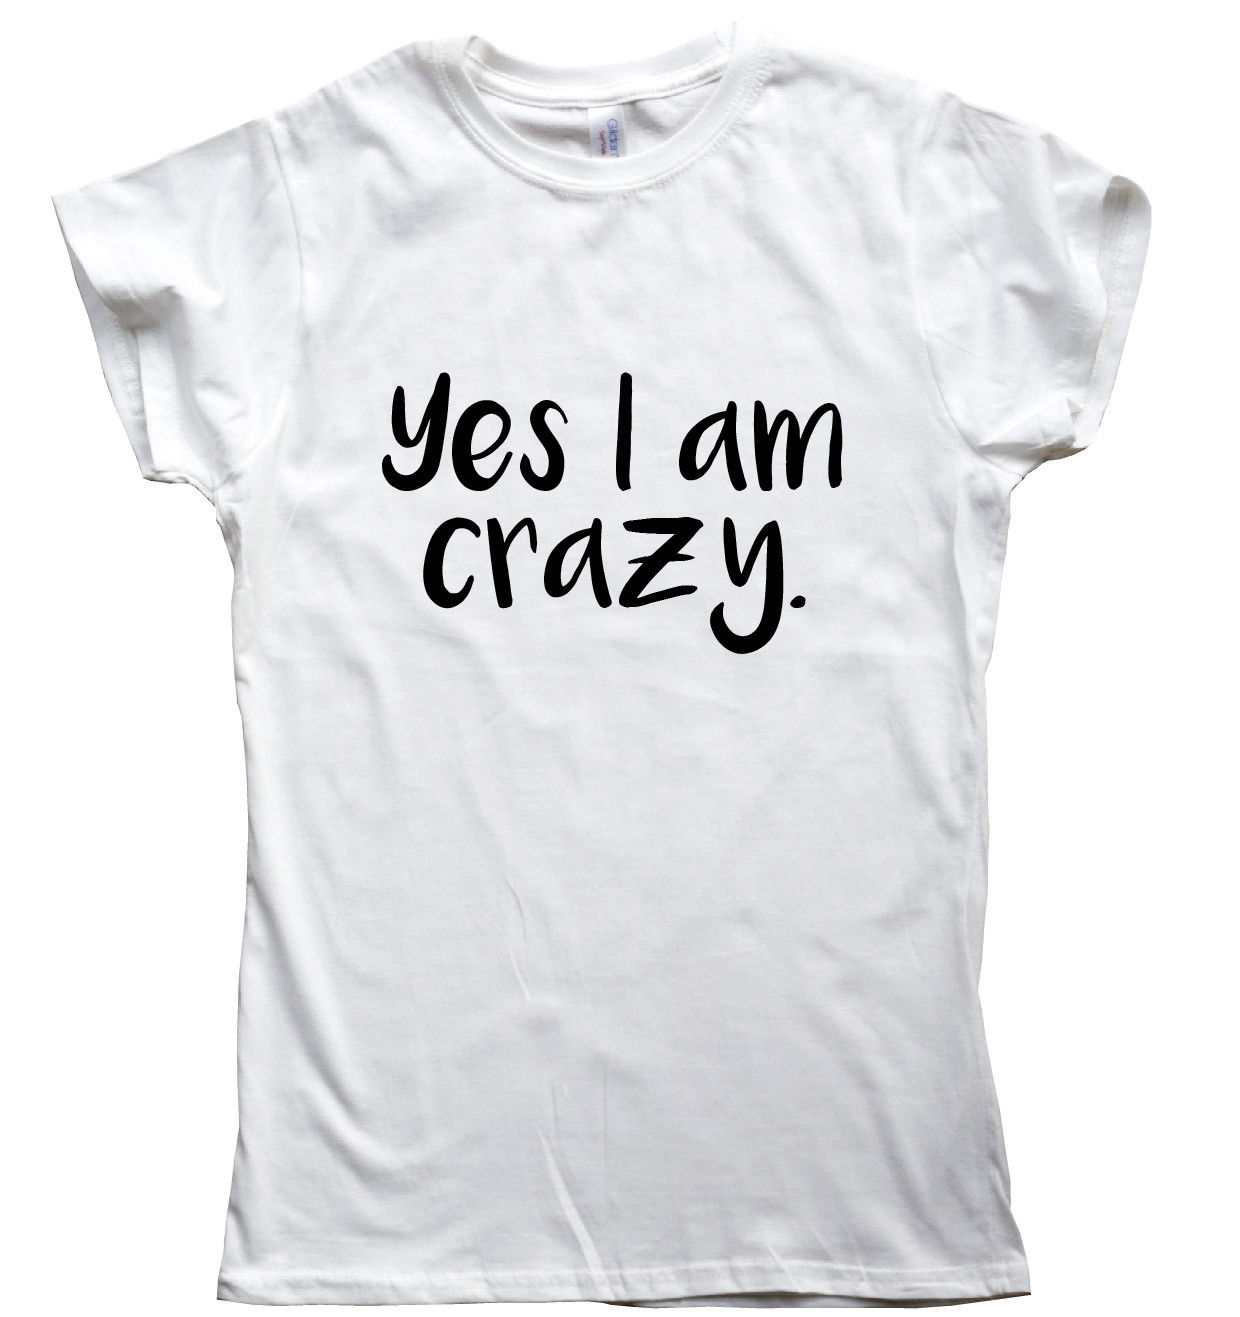 I Might Be Crazy But funny T shirts mens humour gift womens sarcastic slogan top